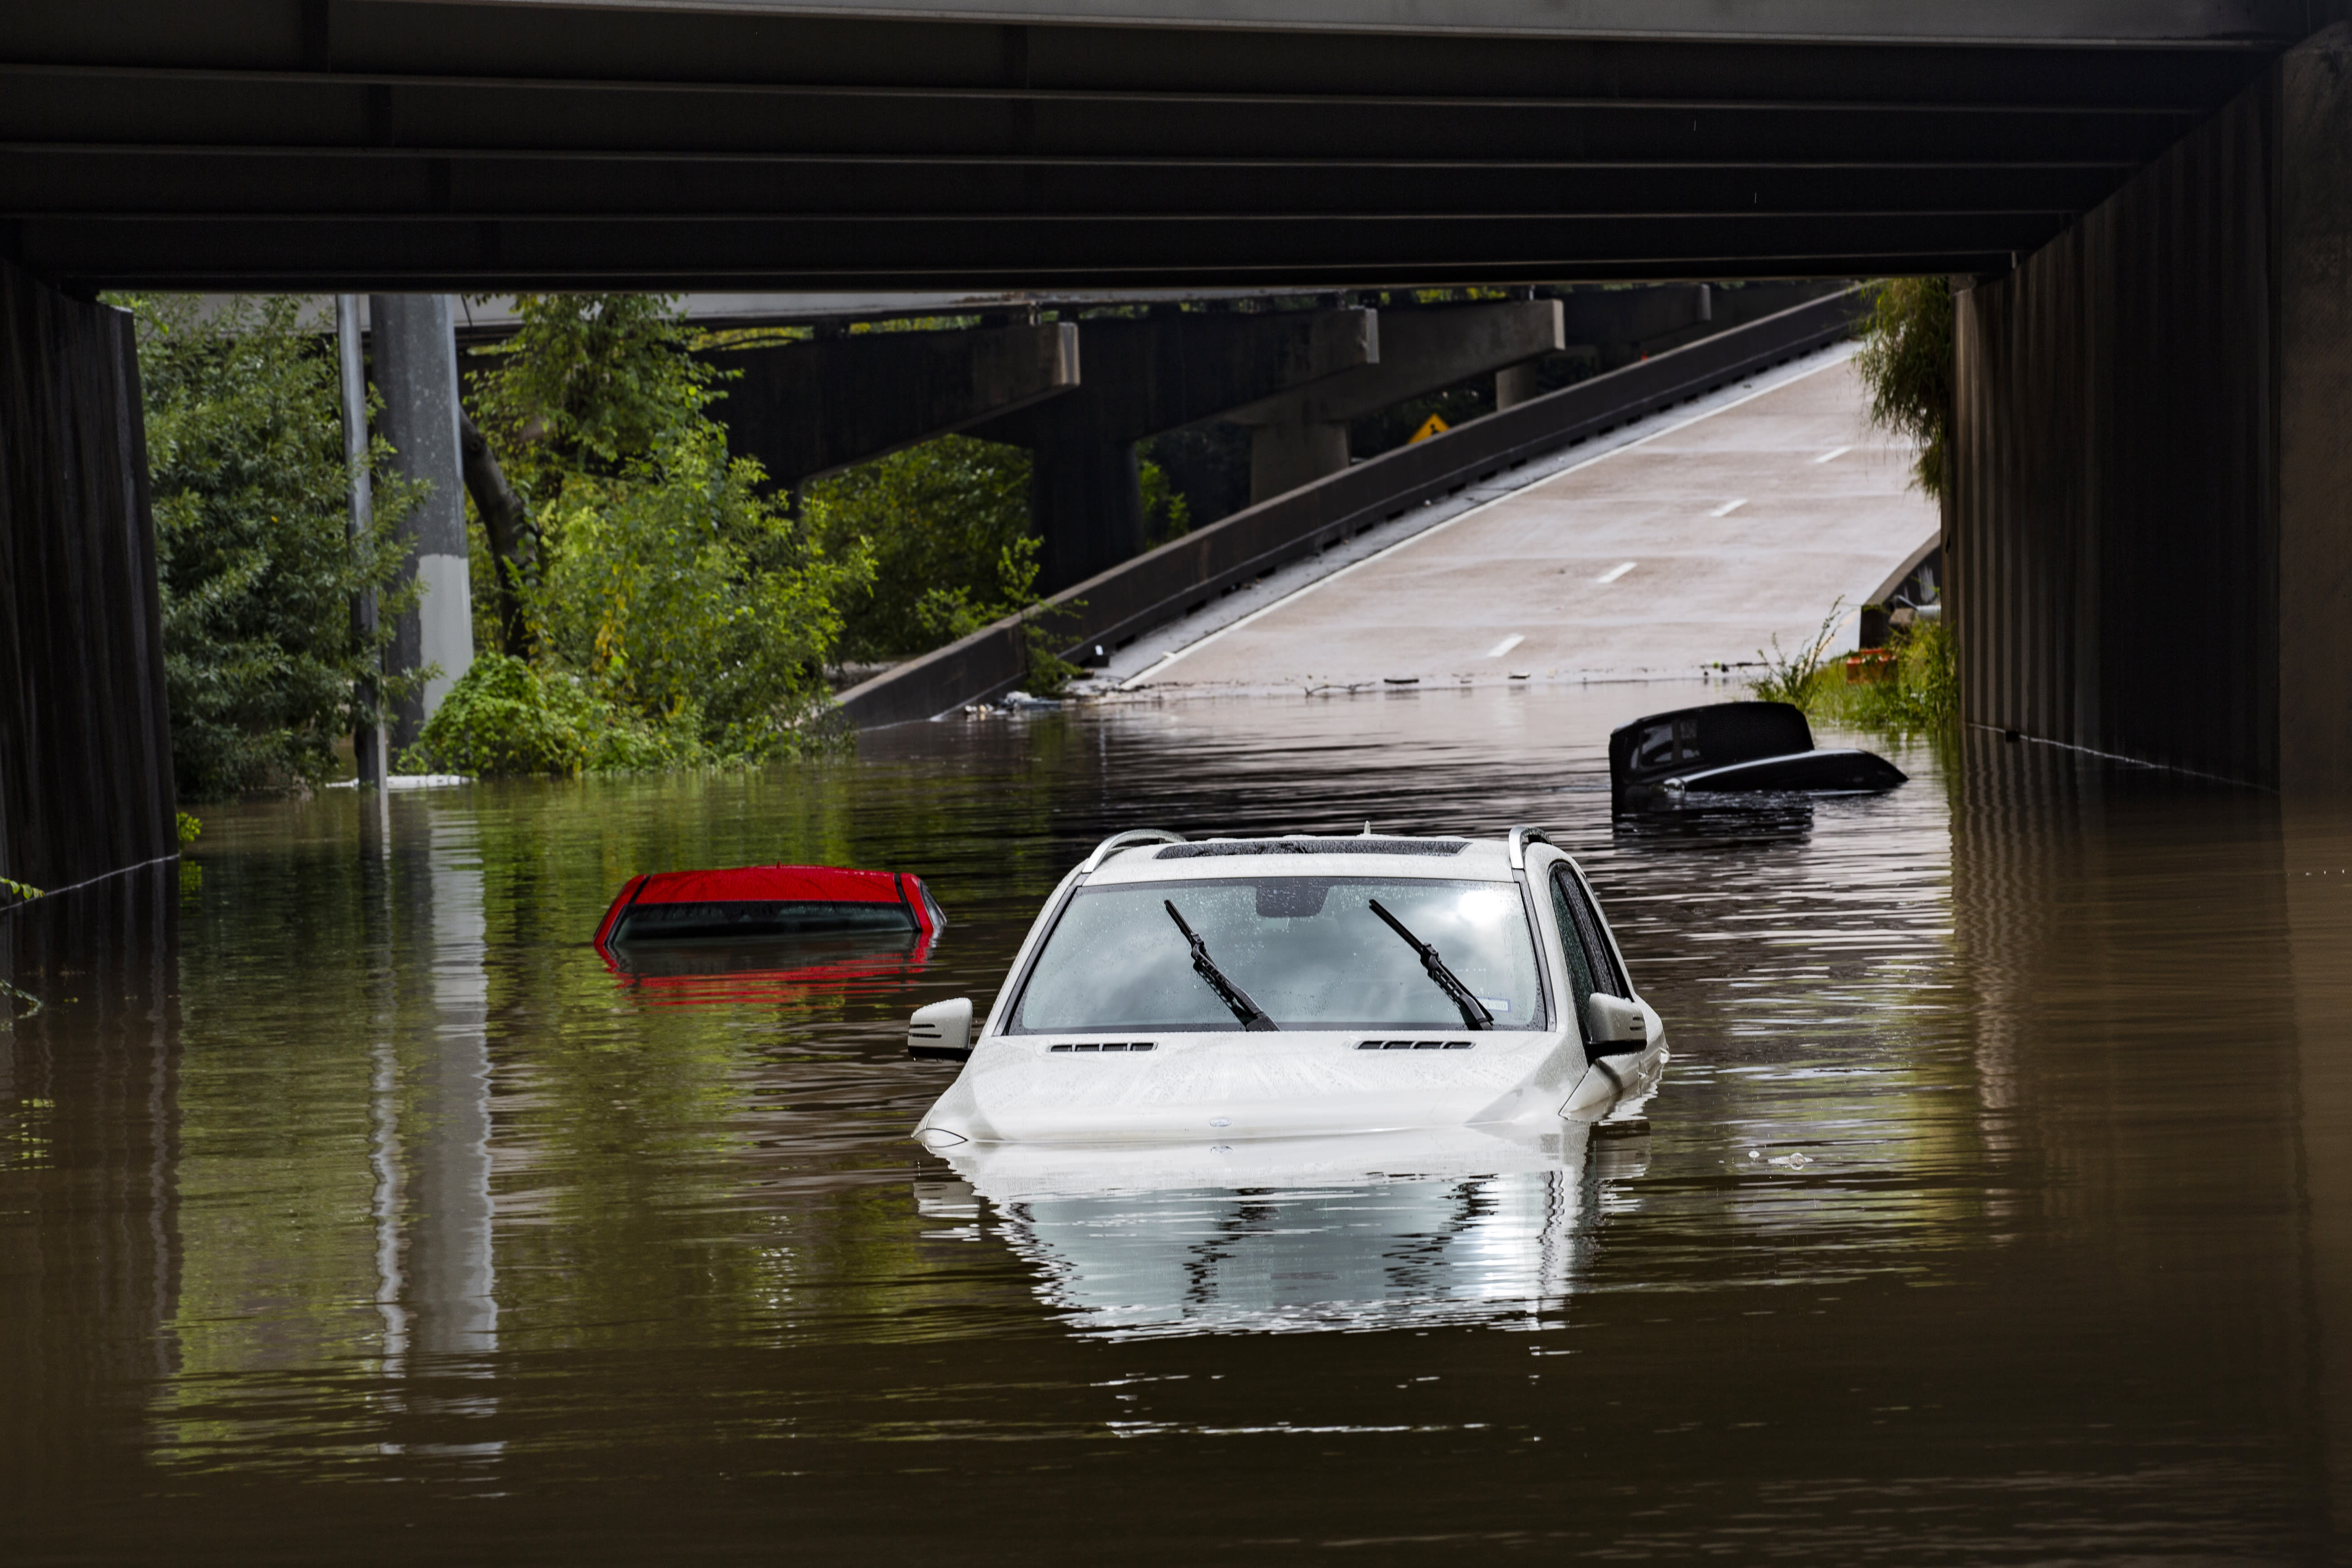 Cars stranded on high flood waters on Houston Ave. exit from Interstate 45 during Tropical Storm Beta Tuesday, Sept. 22, 2020, in Houston. Beta has weakened to a tropical depression as it parked itself over the Texas coast, raising concerns of extensive flooding in Houston and areas further inland. (Marie D. De Jesus/Houston Chronicle via AP)